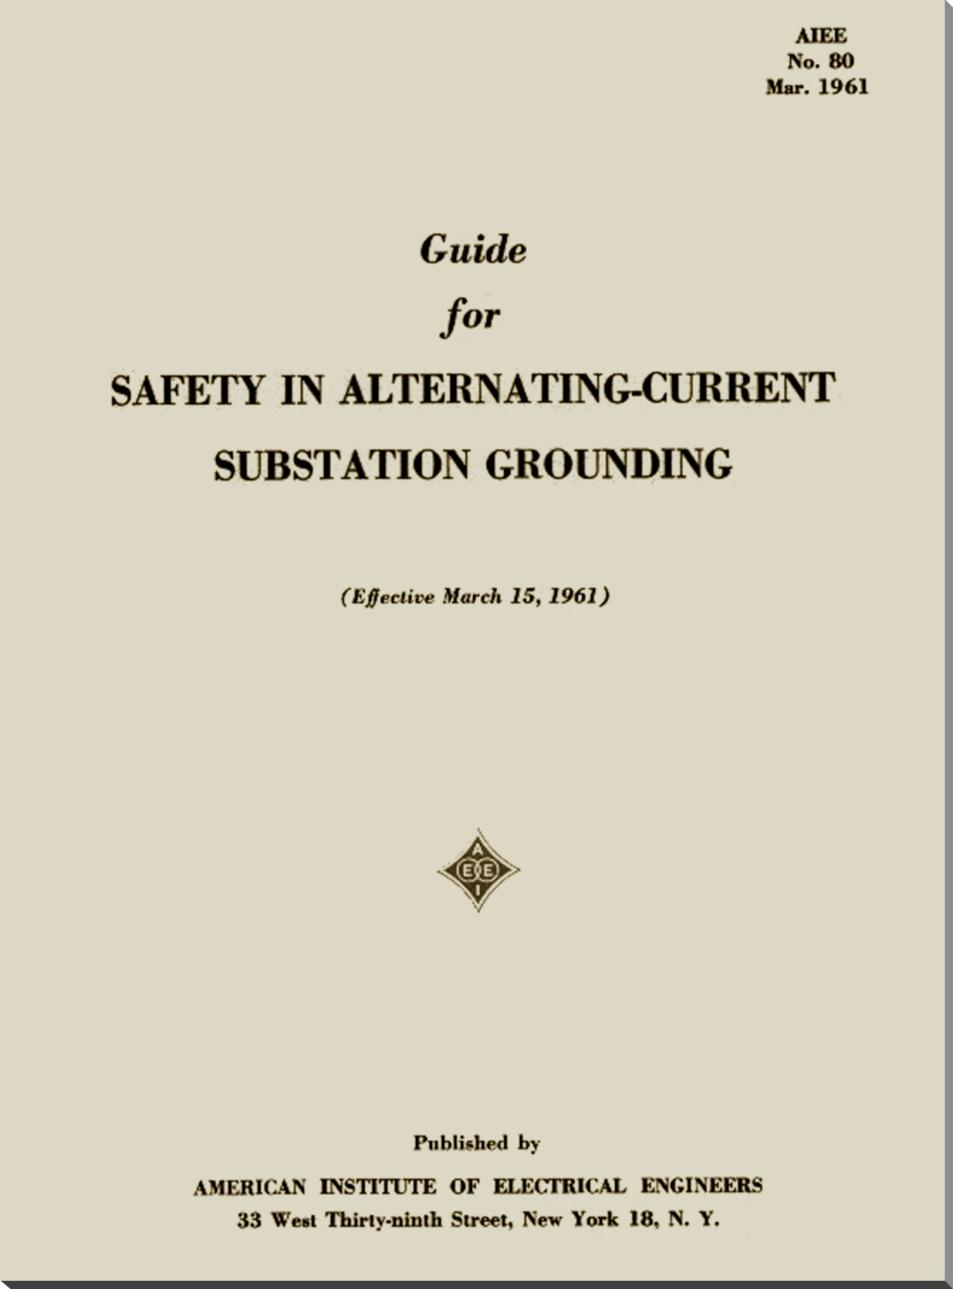 Testing and Evaluation of Grounding Systems: The Revision of the